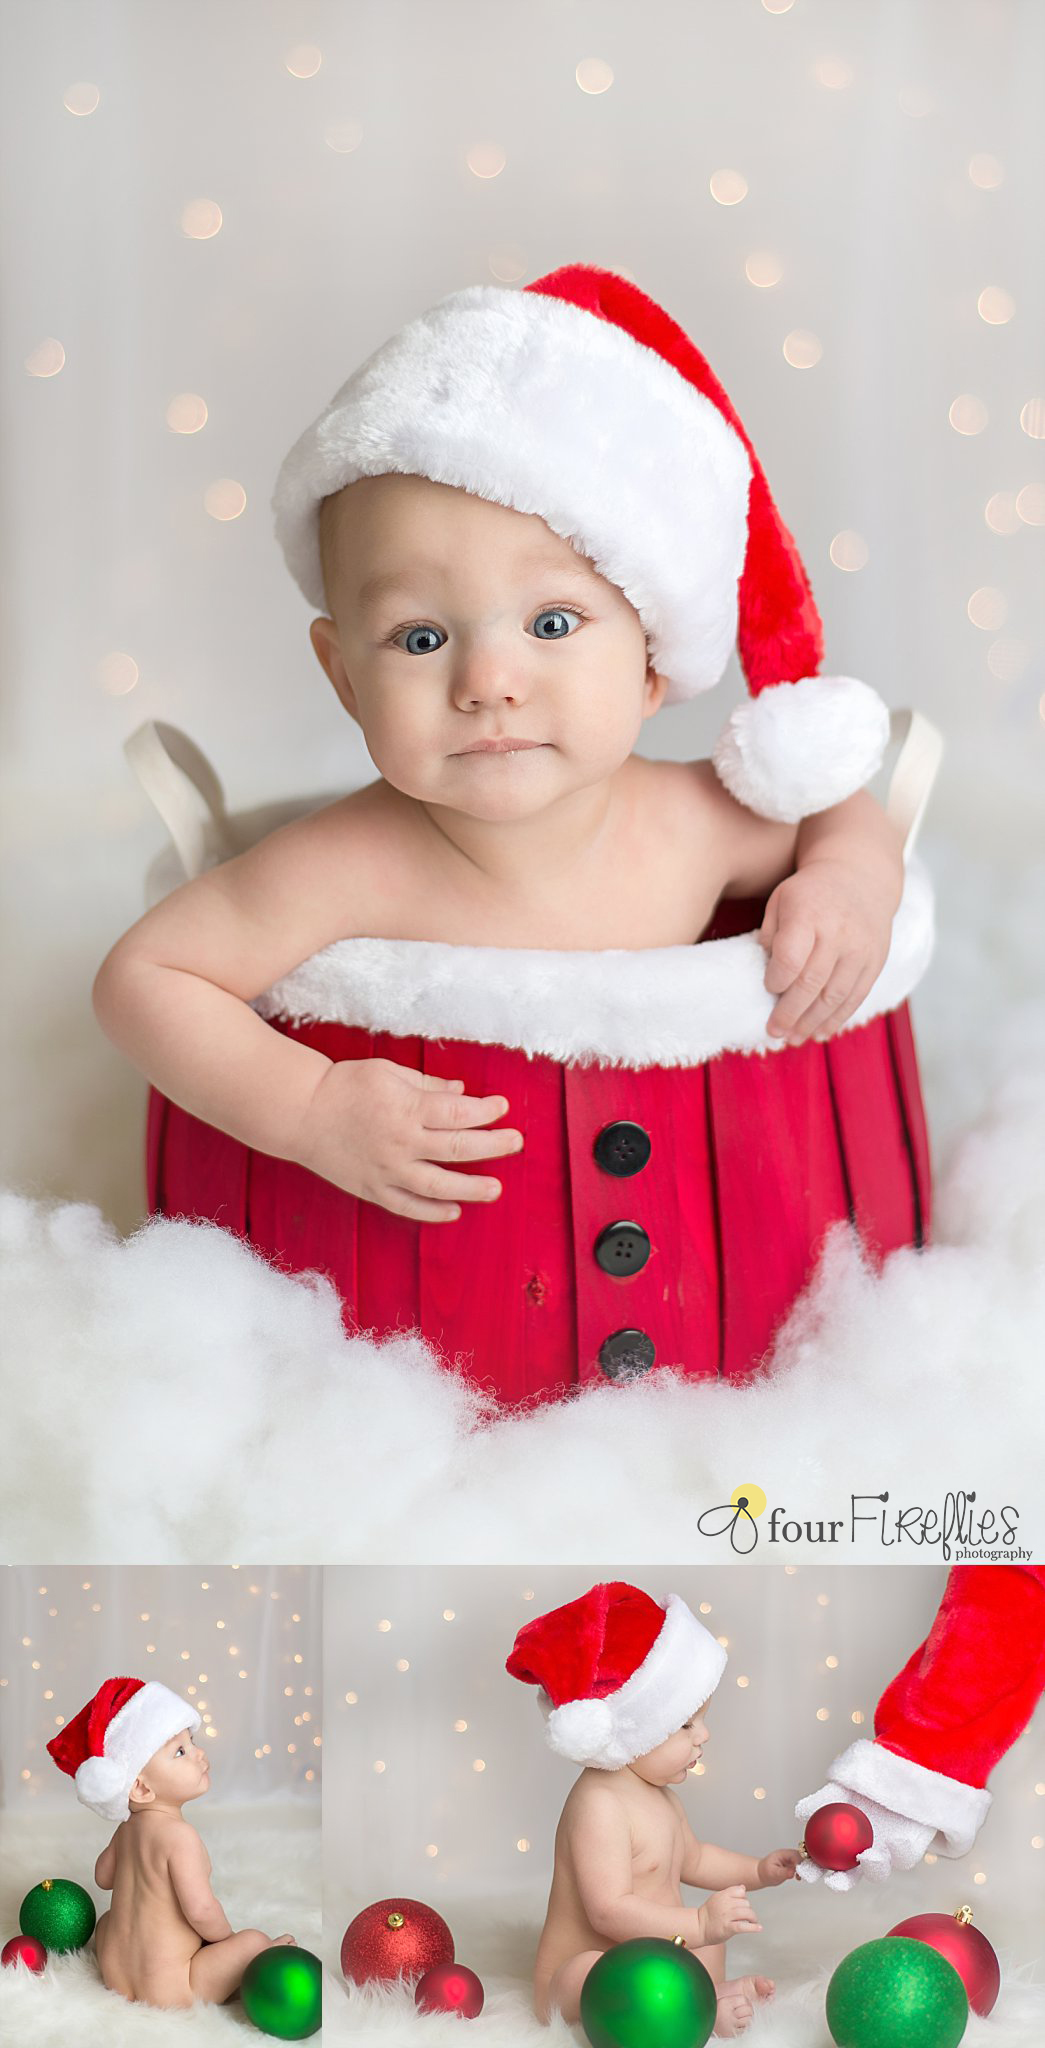 st-louis-baby-photographer-christmas-6-month-boy-in-santa-basket-and-santa-hand-with-bokeh-background.jpg